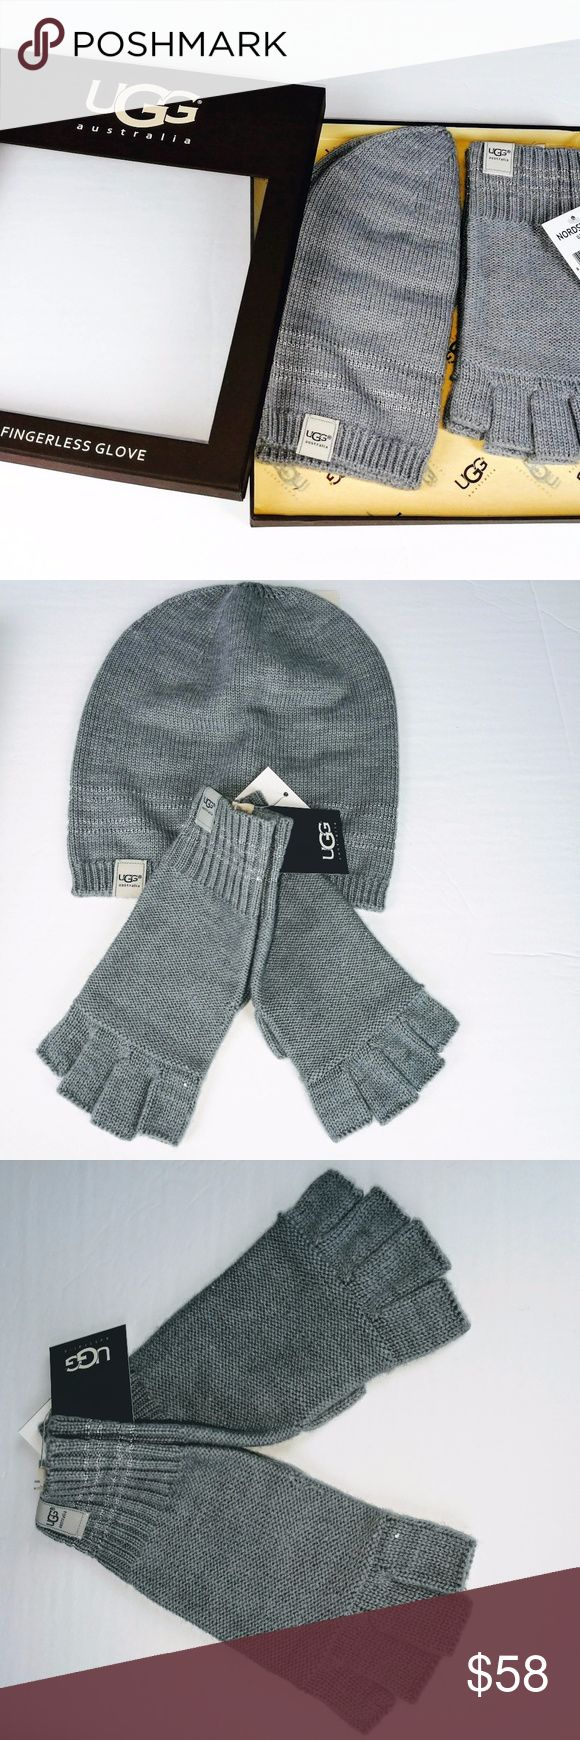 Ugg Australia Hat Open Finger Gloves Box Set Gray Ugg Hat and Open Finger Gloves Gift Set  Boxed Set  Womans One Size  Gray Hat and Gloves  33% Wool  32% Polyester  23% Acrylic  12 Nylon  RN17541  retail 135.00 UGG Accessories Gloves & Mittens